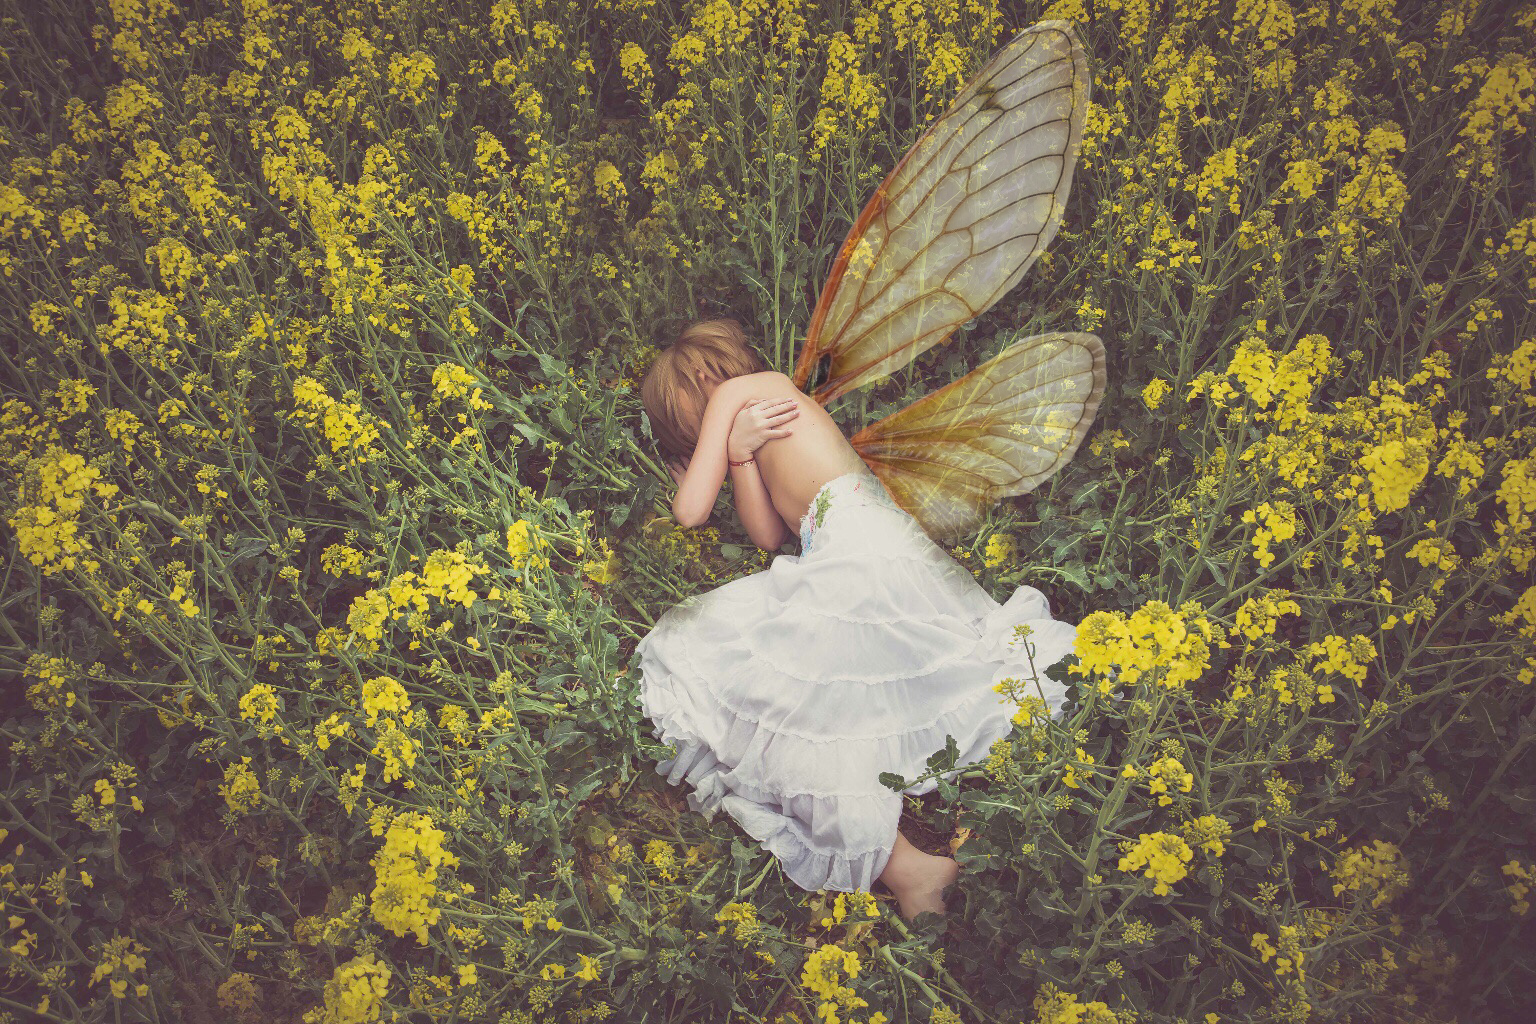 Fairy Girl Lying in Grass Field of Flowers